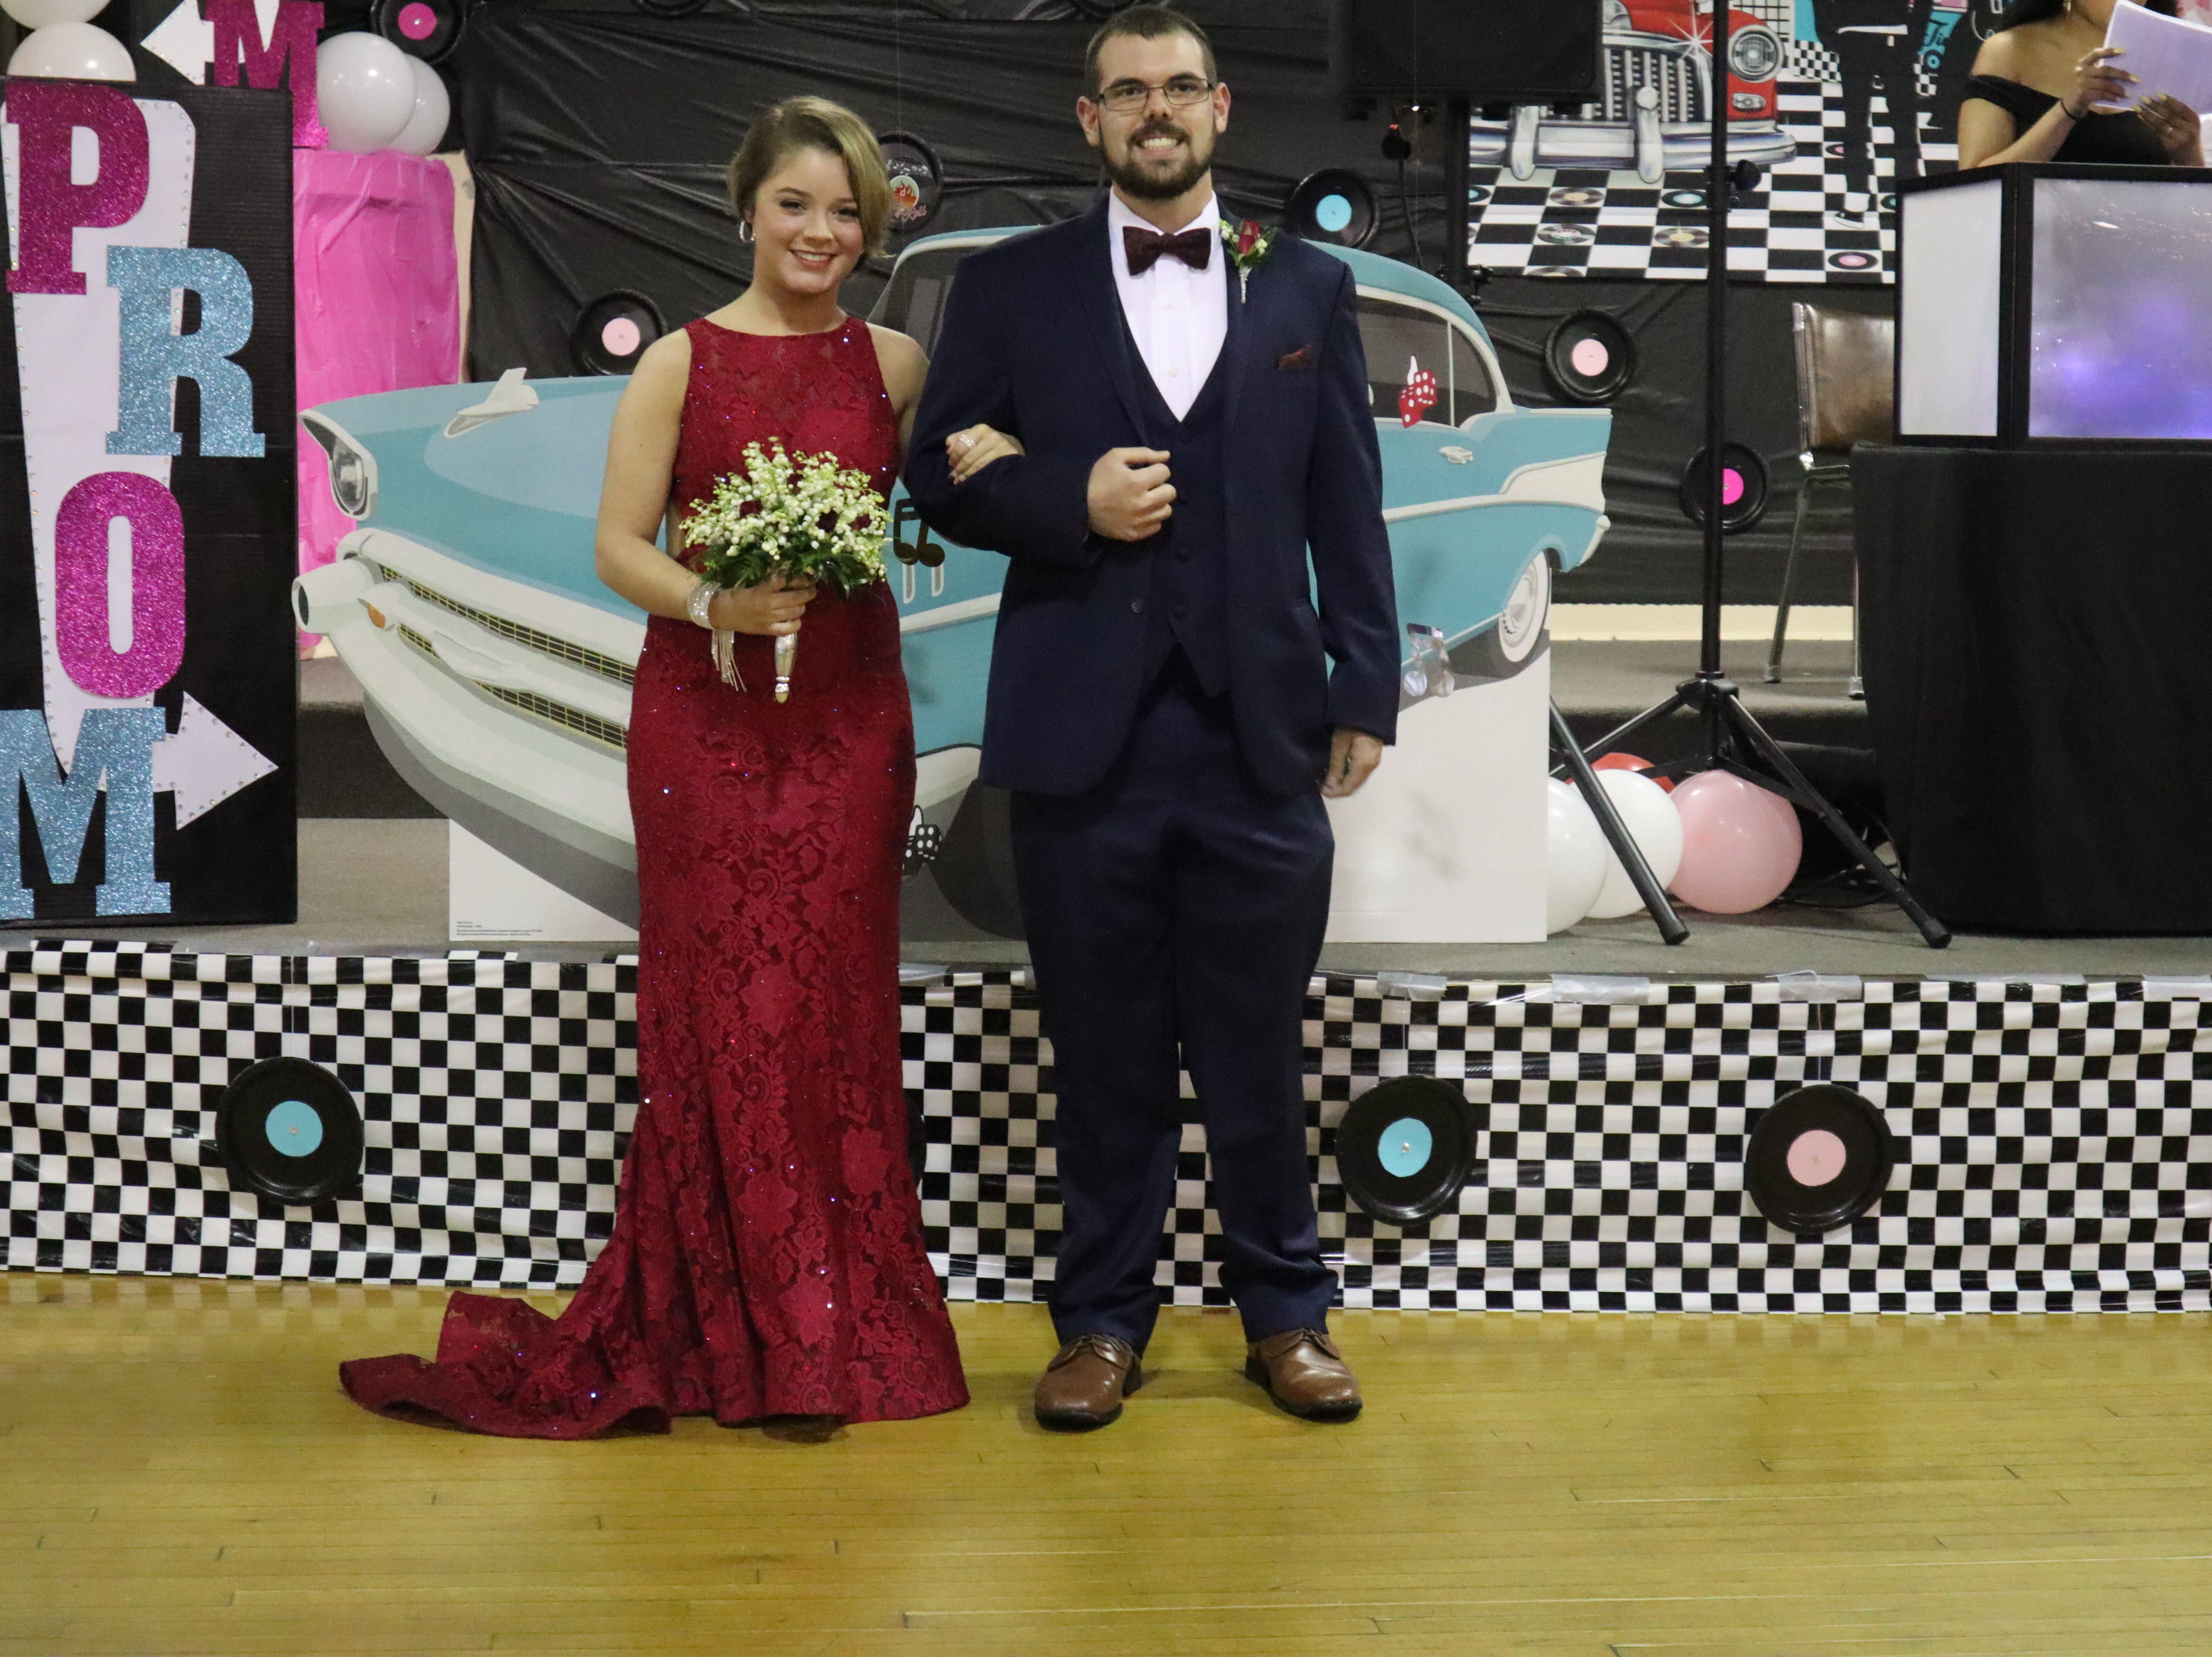 Coshocton High School held it's prom Saturday night at Lake Park Pavillion. The theme was Blast from the Past.